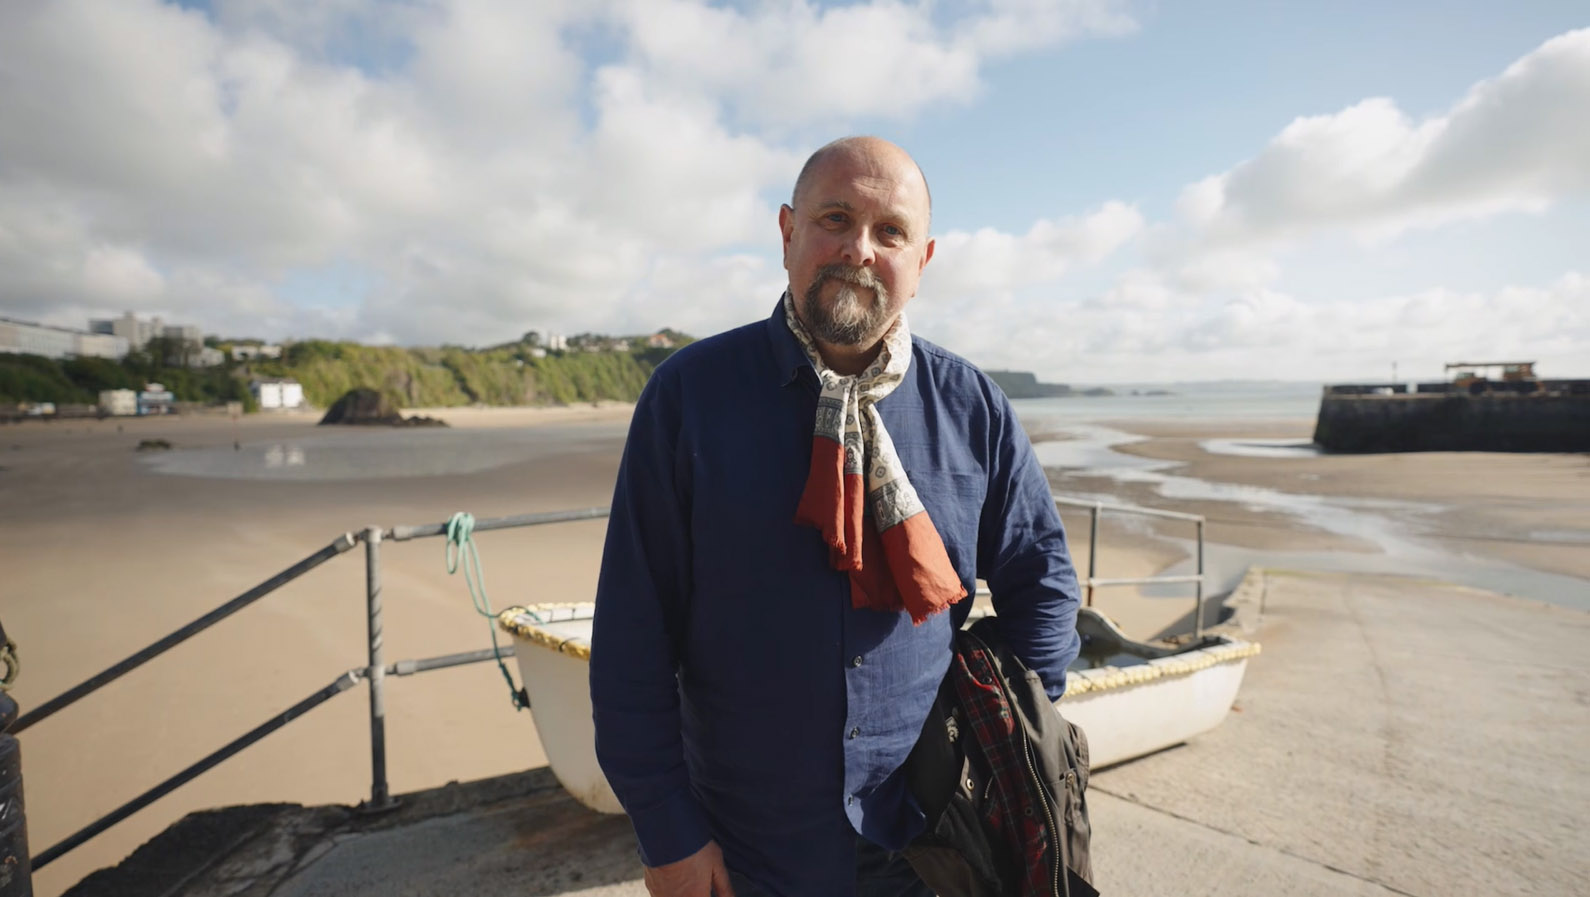 middle aged white man with goatee beard standing on a harbour wall above a sandy beach